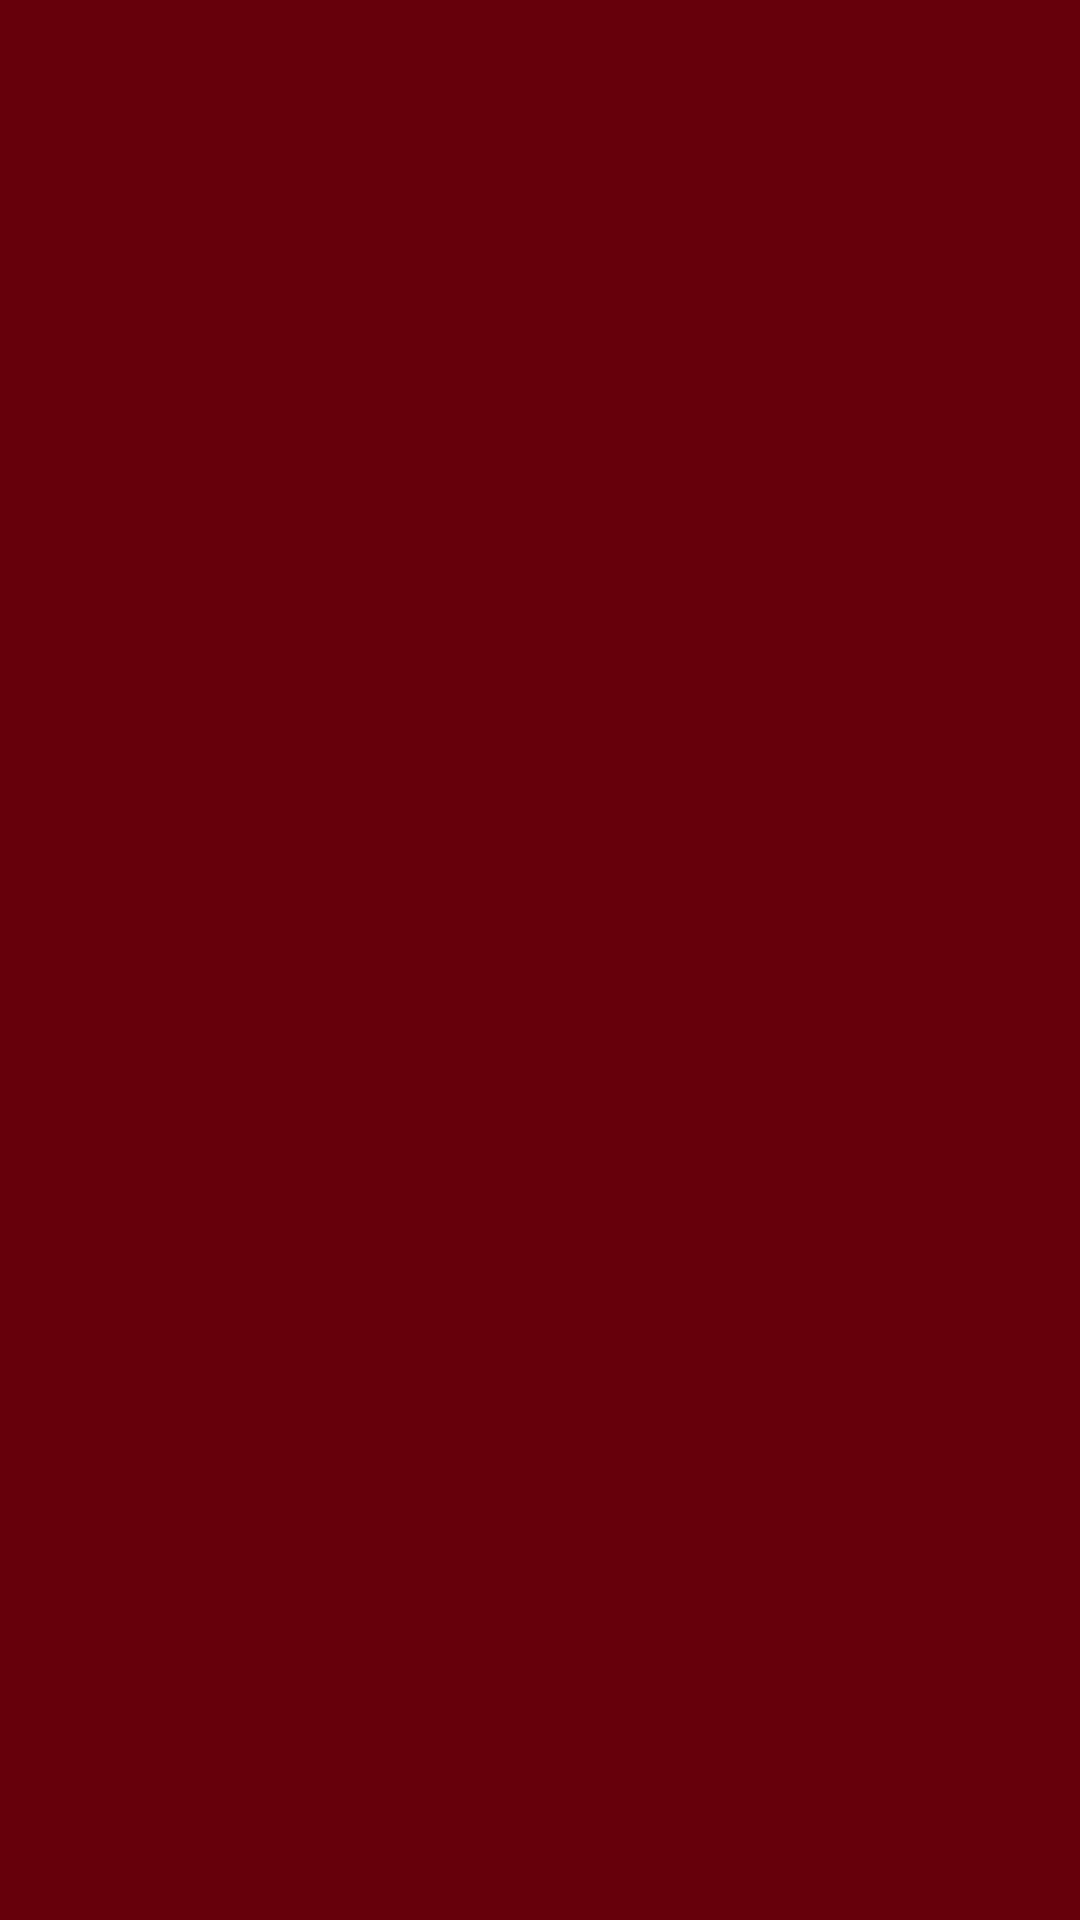 1080x1920 Rosewood Solid Color Background